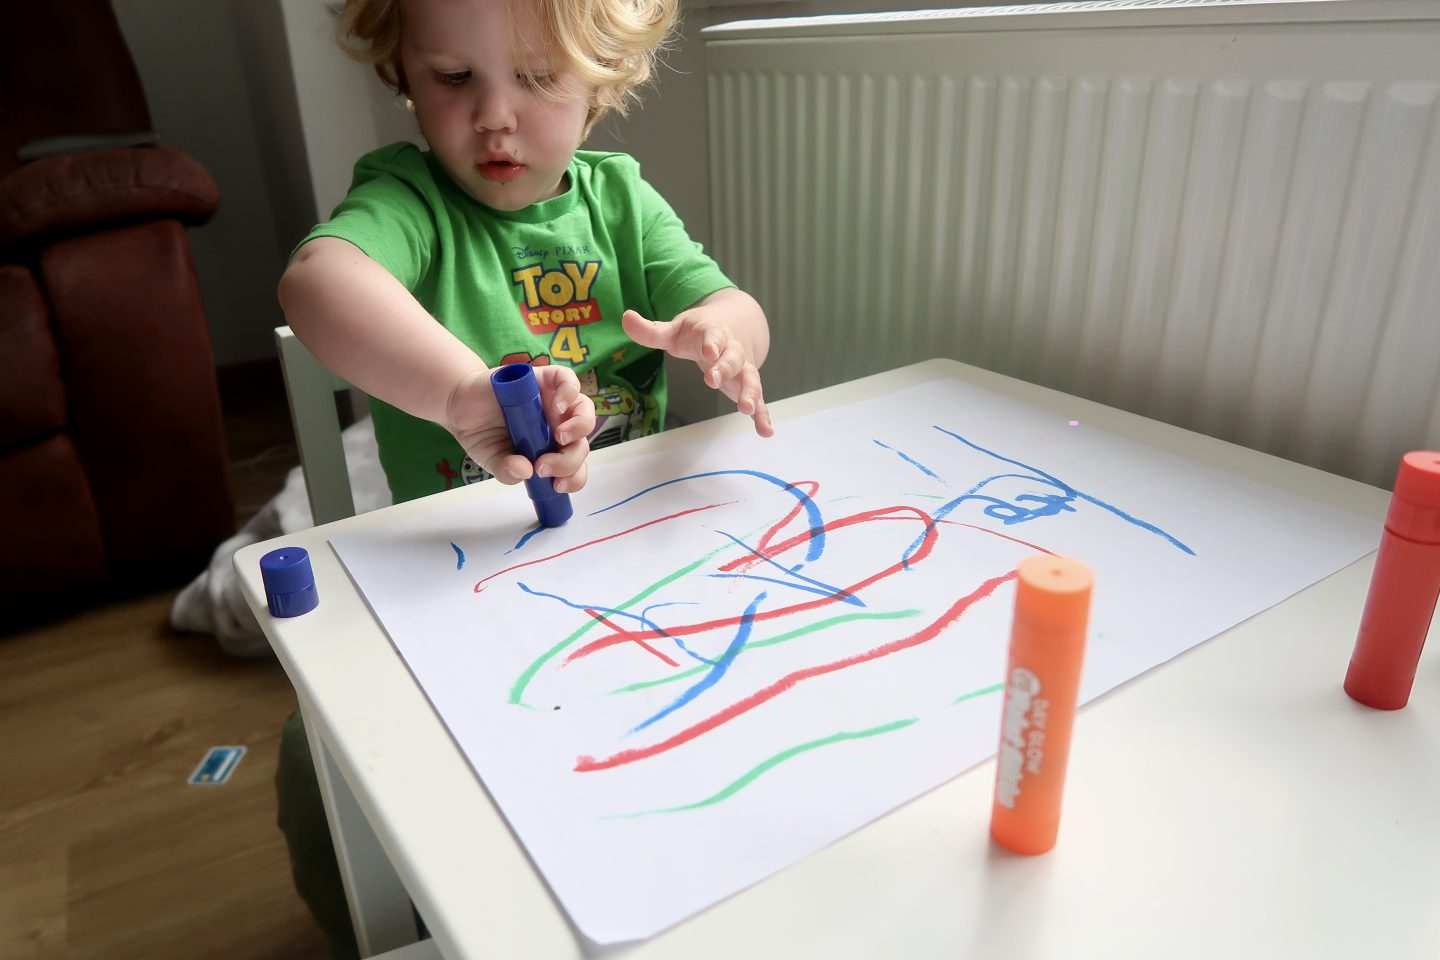 A toddler at a little table painting on paper with paint sticks